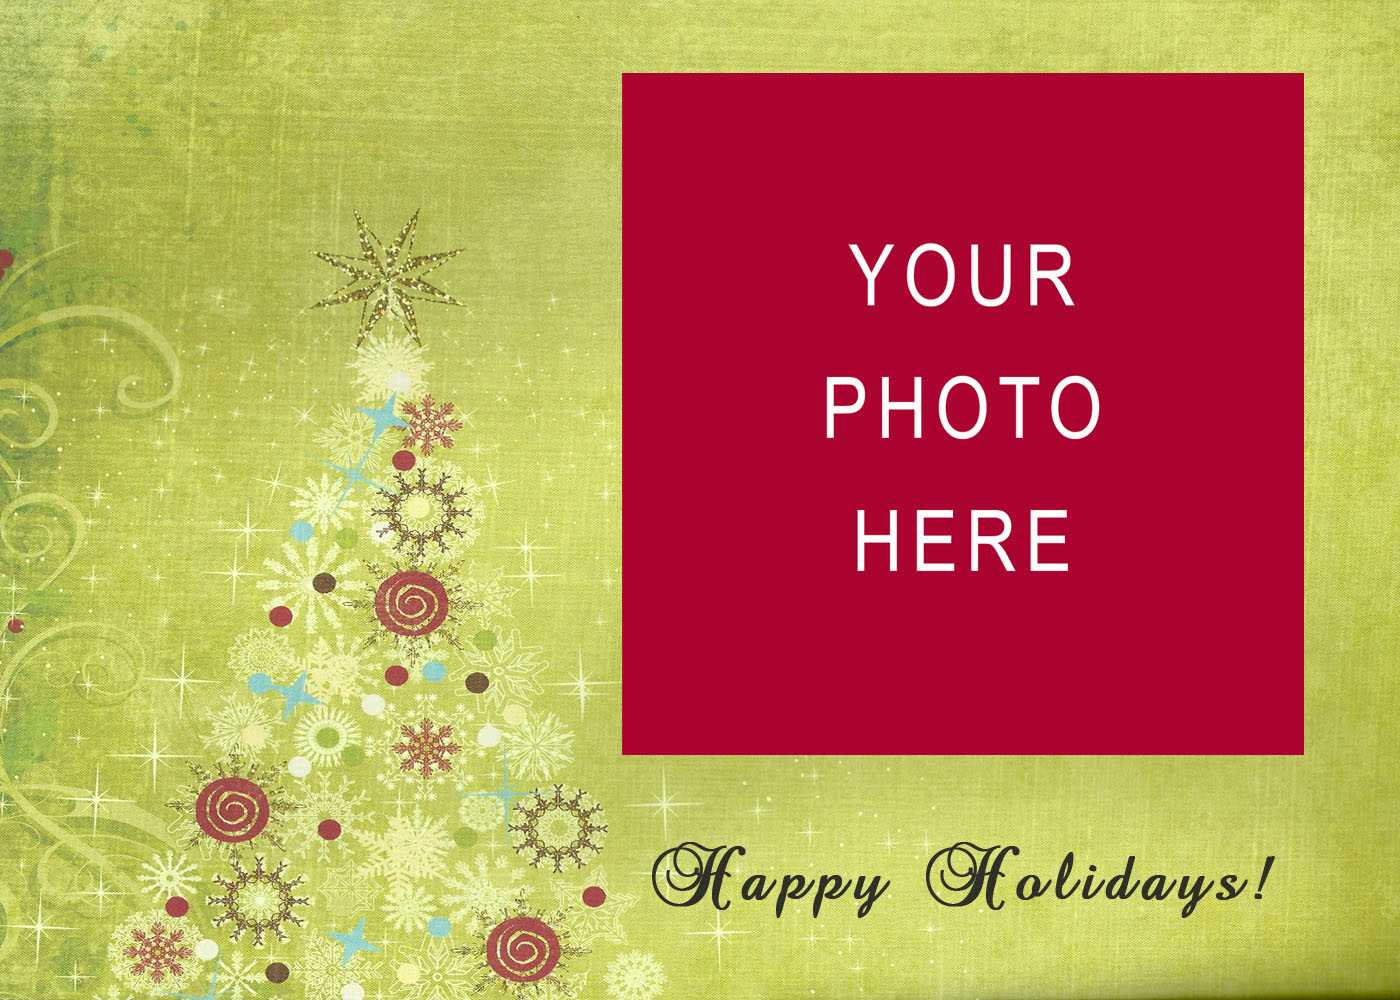 008 Christmas Card Templates Free Download Images In Photo Inside Happy Holidays Card Template